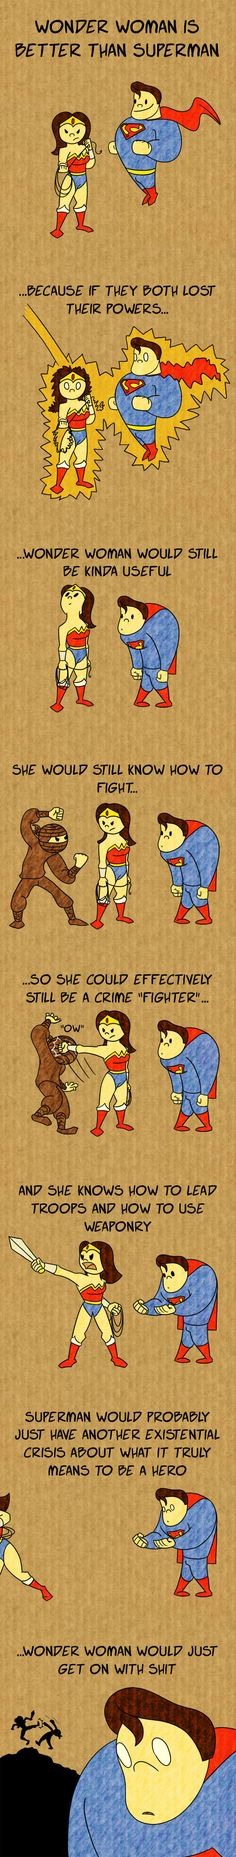 Wonder Woman is better than Super Man by ~spaced-brain on deviantART.  Sorry, @Damon Ridgway Williams